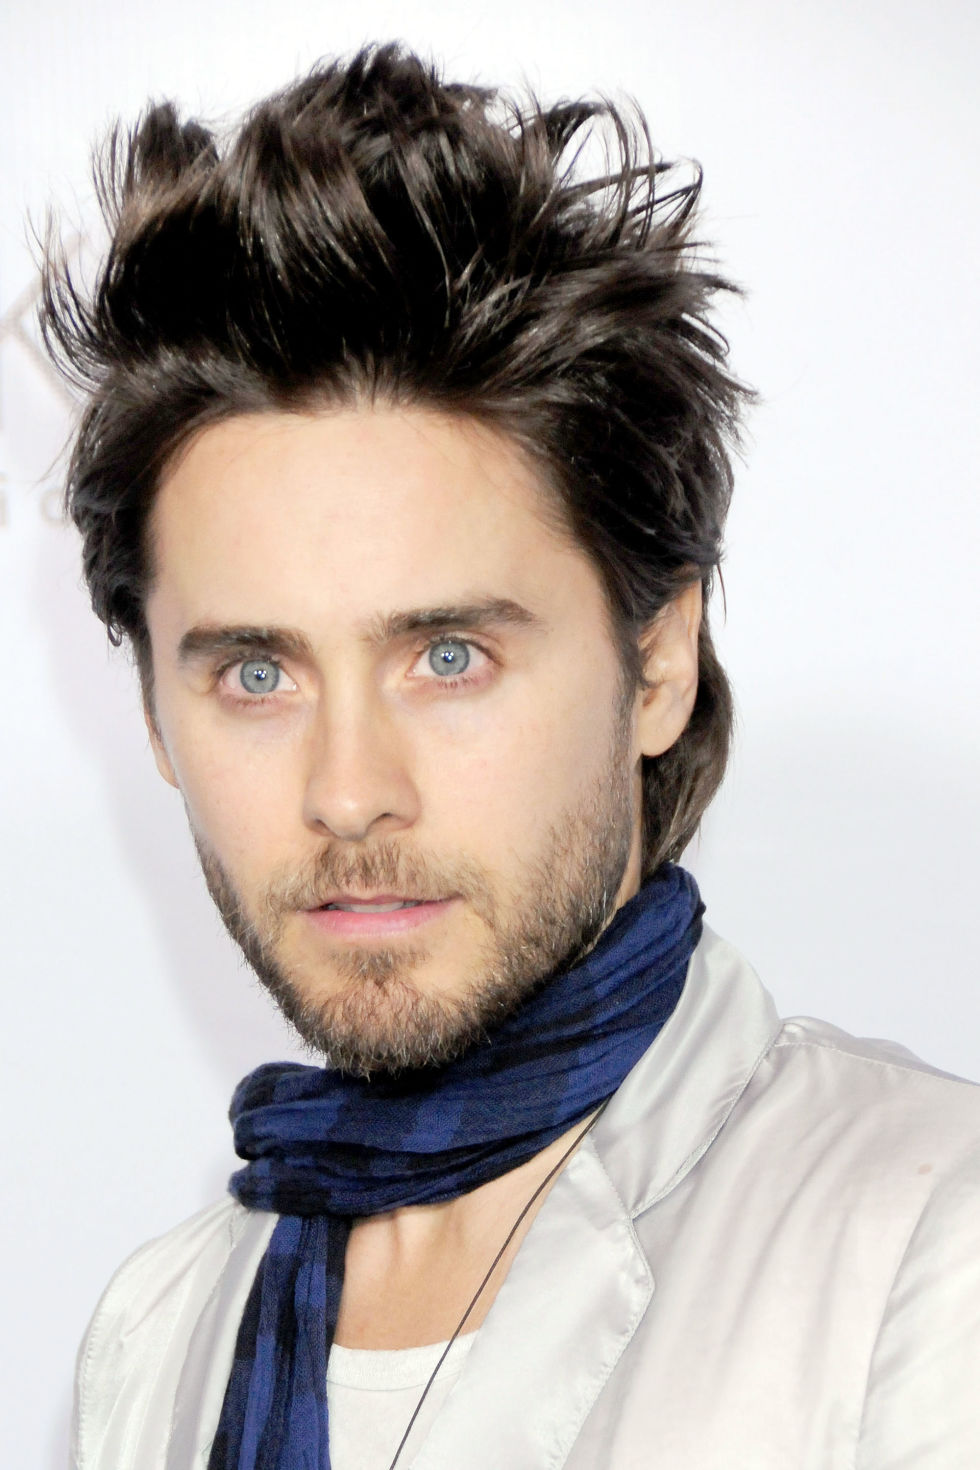 jared leto tumblrjared leto 2016, jared leto instagram, jared leto 2017, jared leto vk, jared leto gucci, jared leto wiki, jared leto height, jared leto films, jared leto рост, jared leto fight club, jared leto young, jared leto tumblr, jared leto quotes, jared leto oscar, jared leto hurricane, jared leto wikipedia, jared leto личная жизнь, jared leto песни, jared leto movies, jared leto carrera